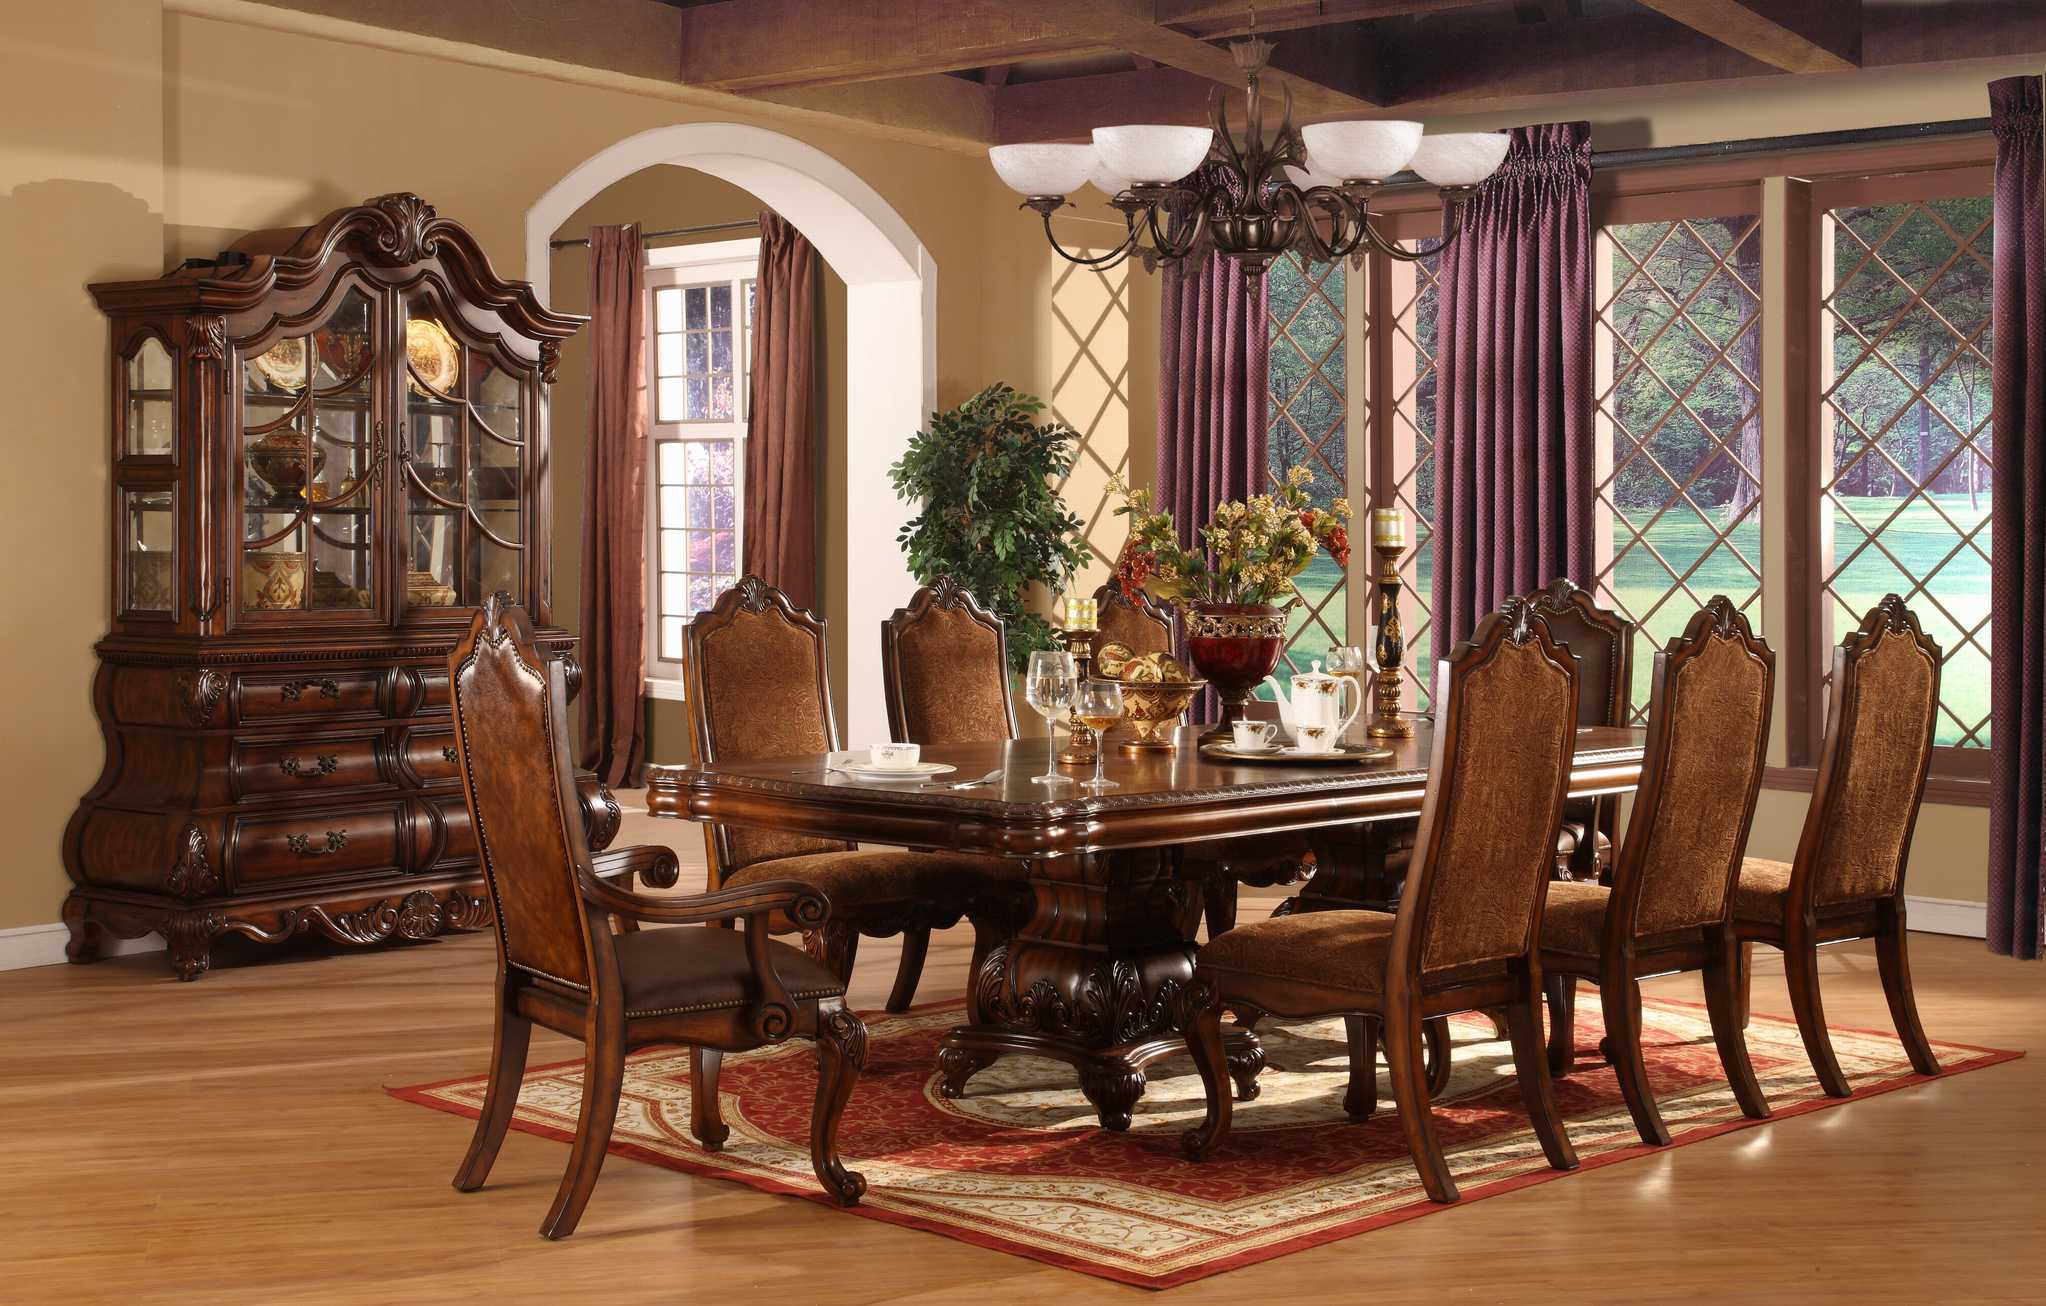 Amazing Formal Dining Room Sets With Buffet And Ceiling Light For